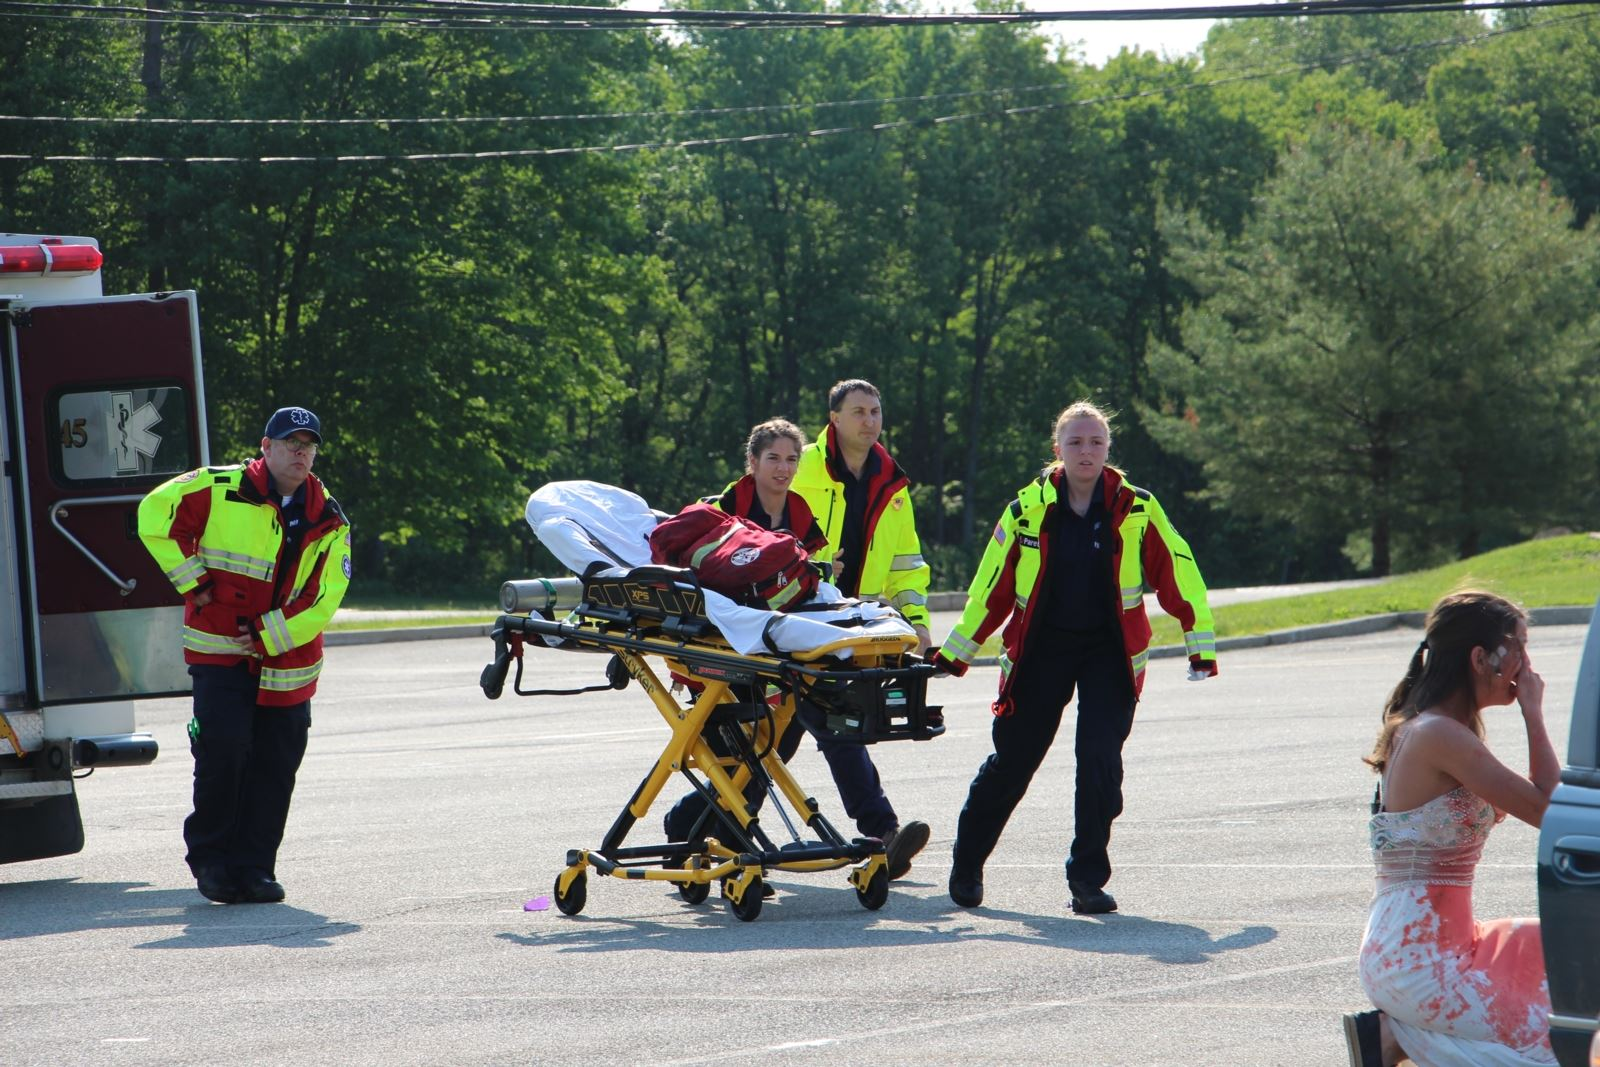 Emergency Crews with Stretcher at the Accident